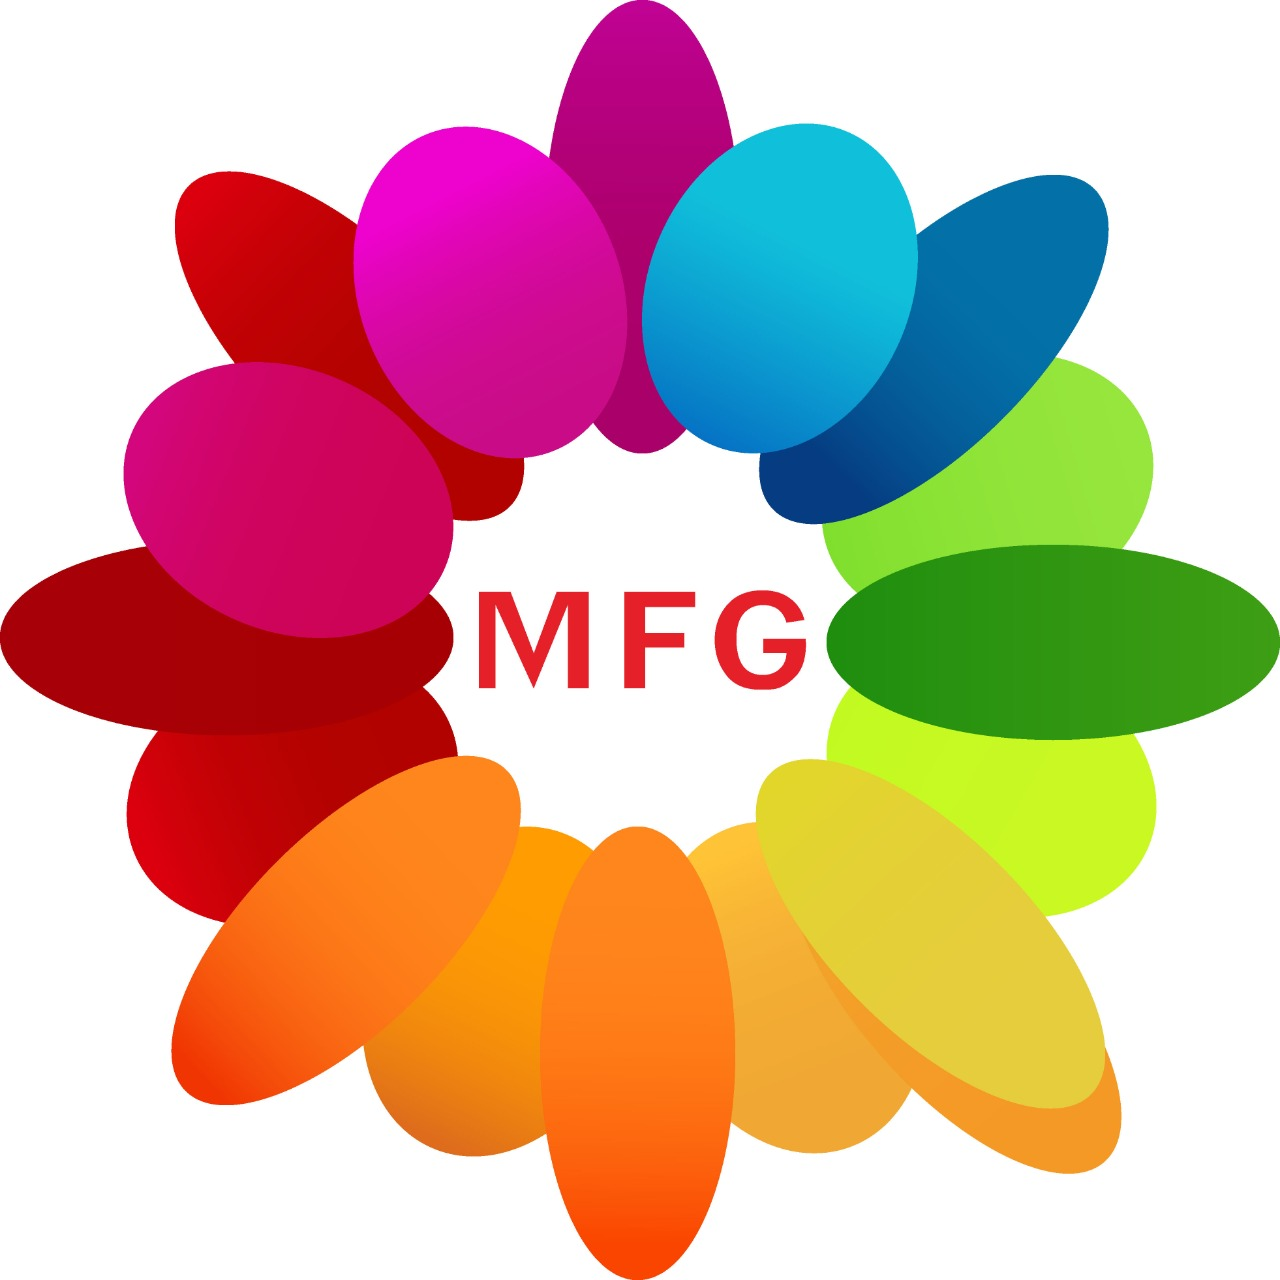 Exotic hand bouquet of lavender and white orchids mix together